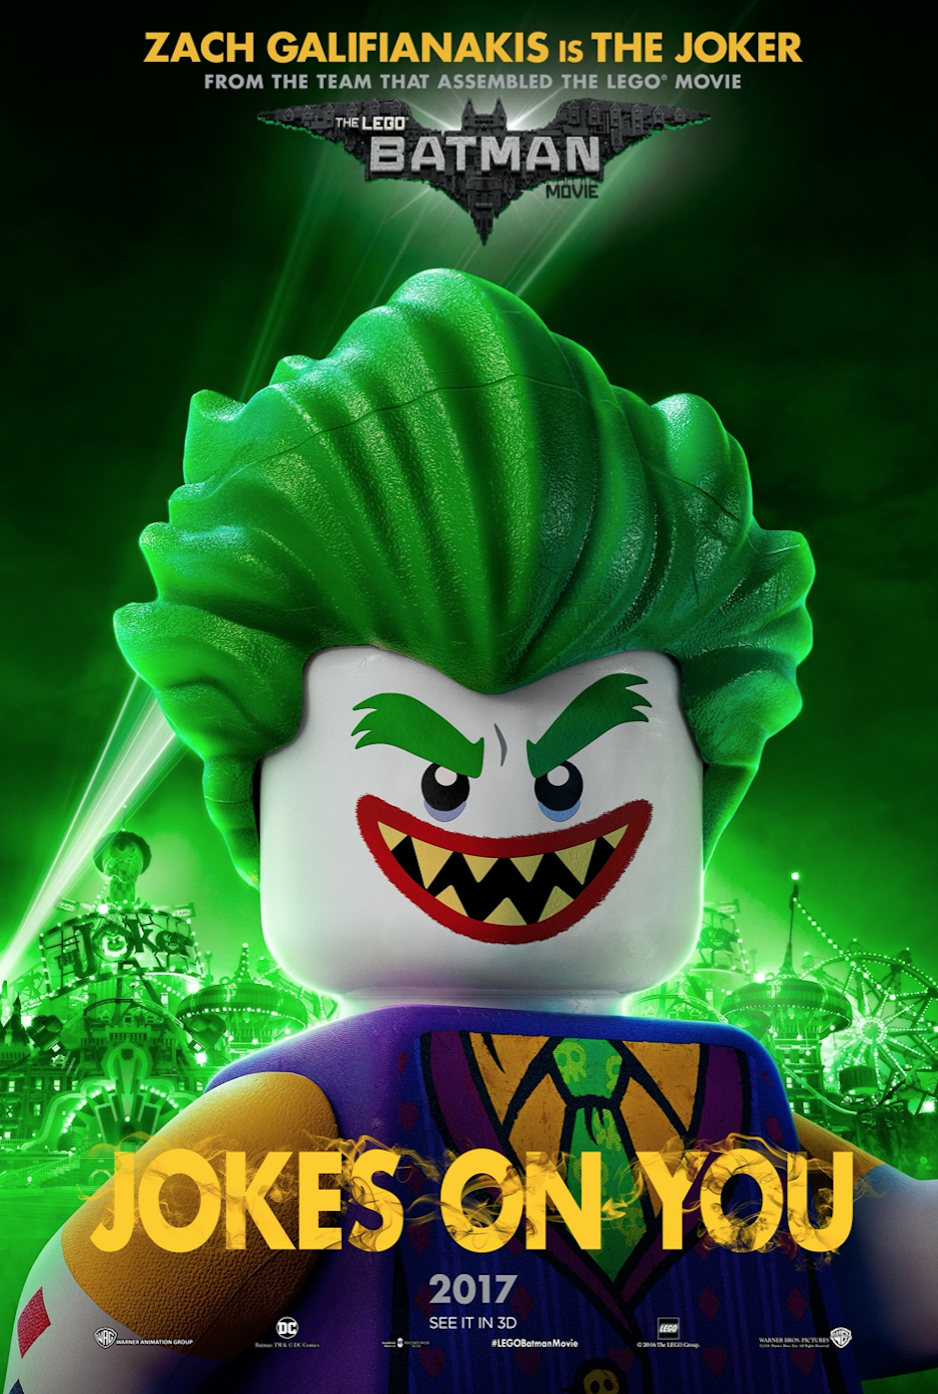 The Joker Harley Quinn And Robin Are Adorably Fierce In New Lego Batman Movie Posters